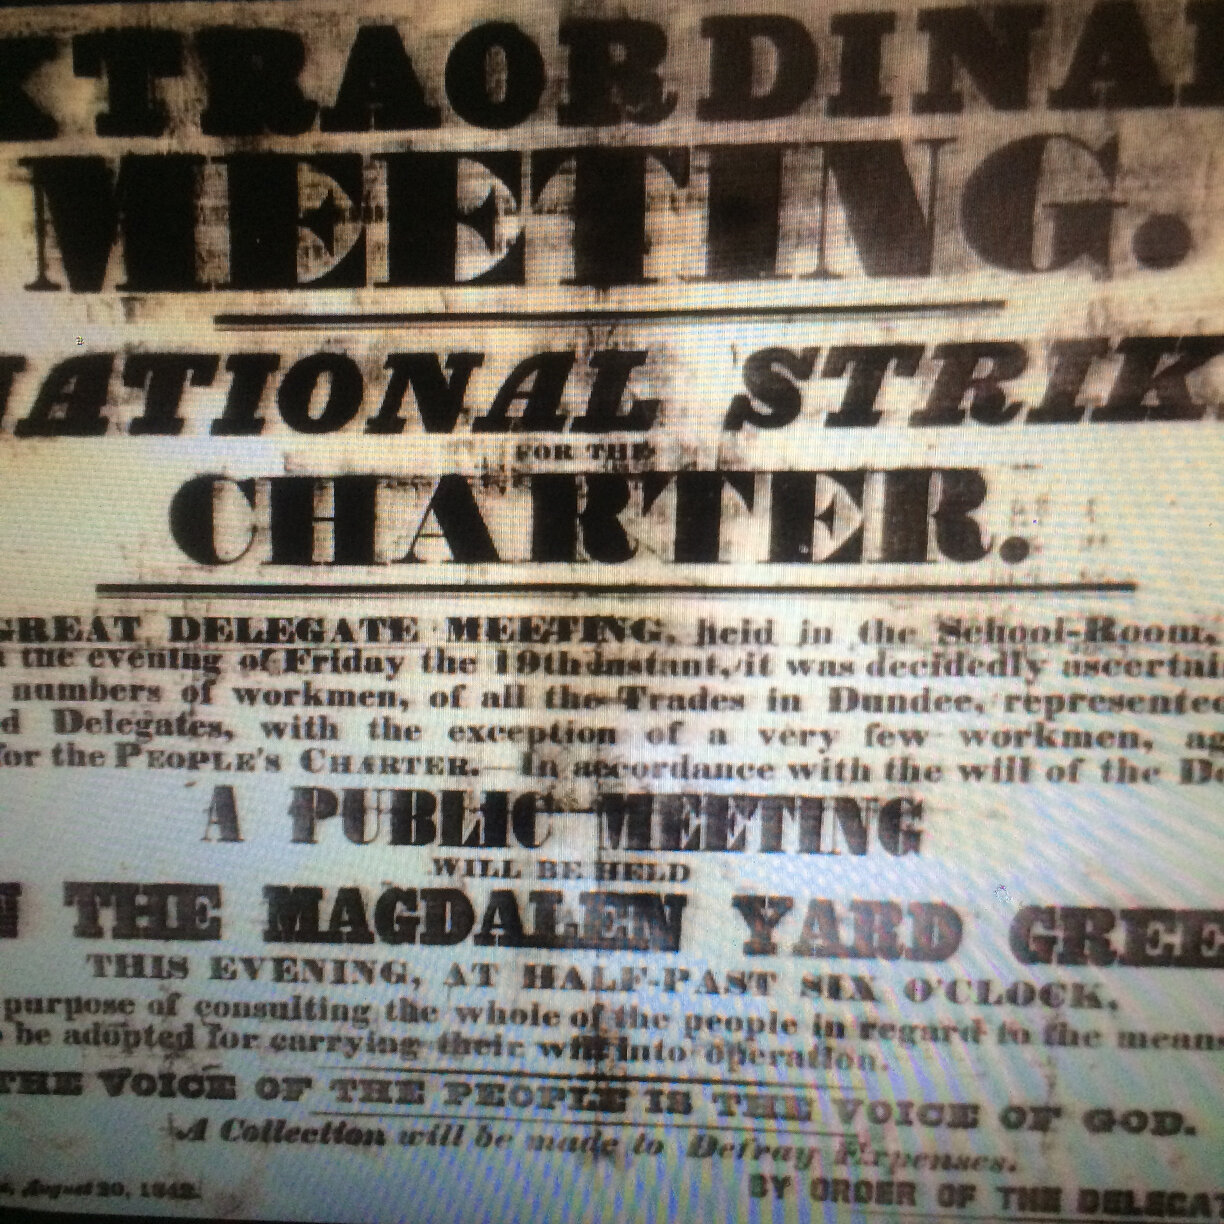 Momentum Is The New Chartism (16)